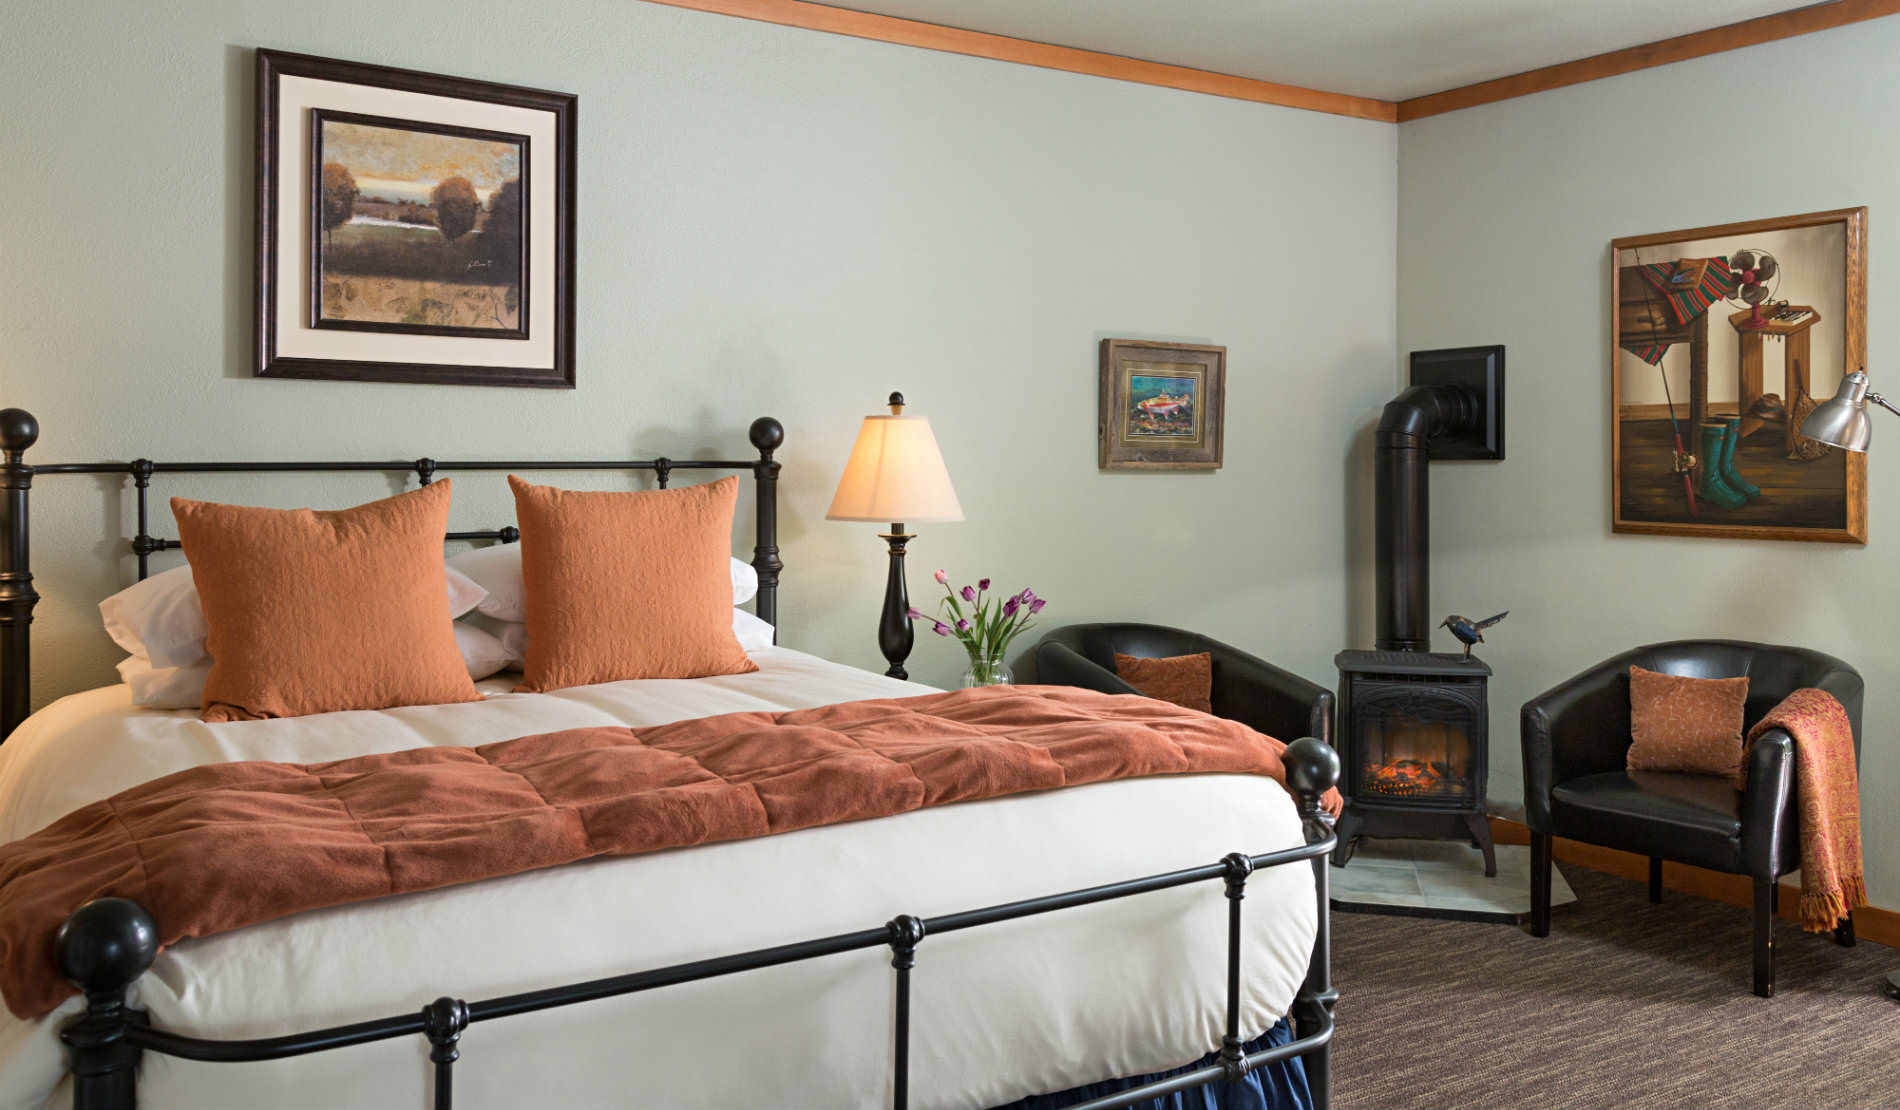 Large iron bedstand with soft rust and white bedding, two chairs beside wood burning stove.